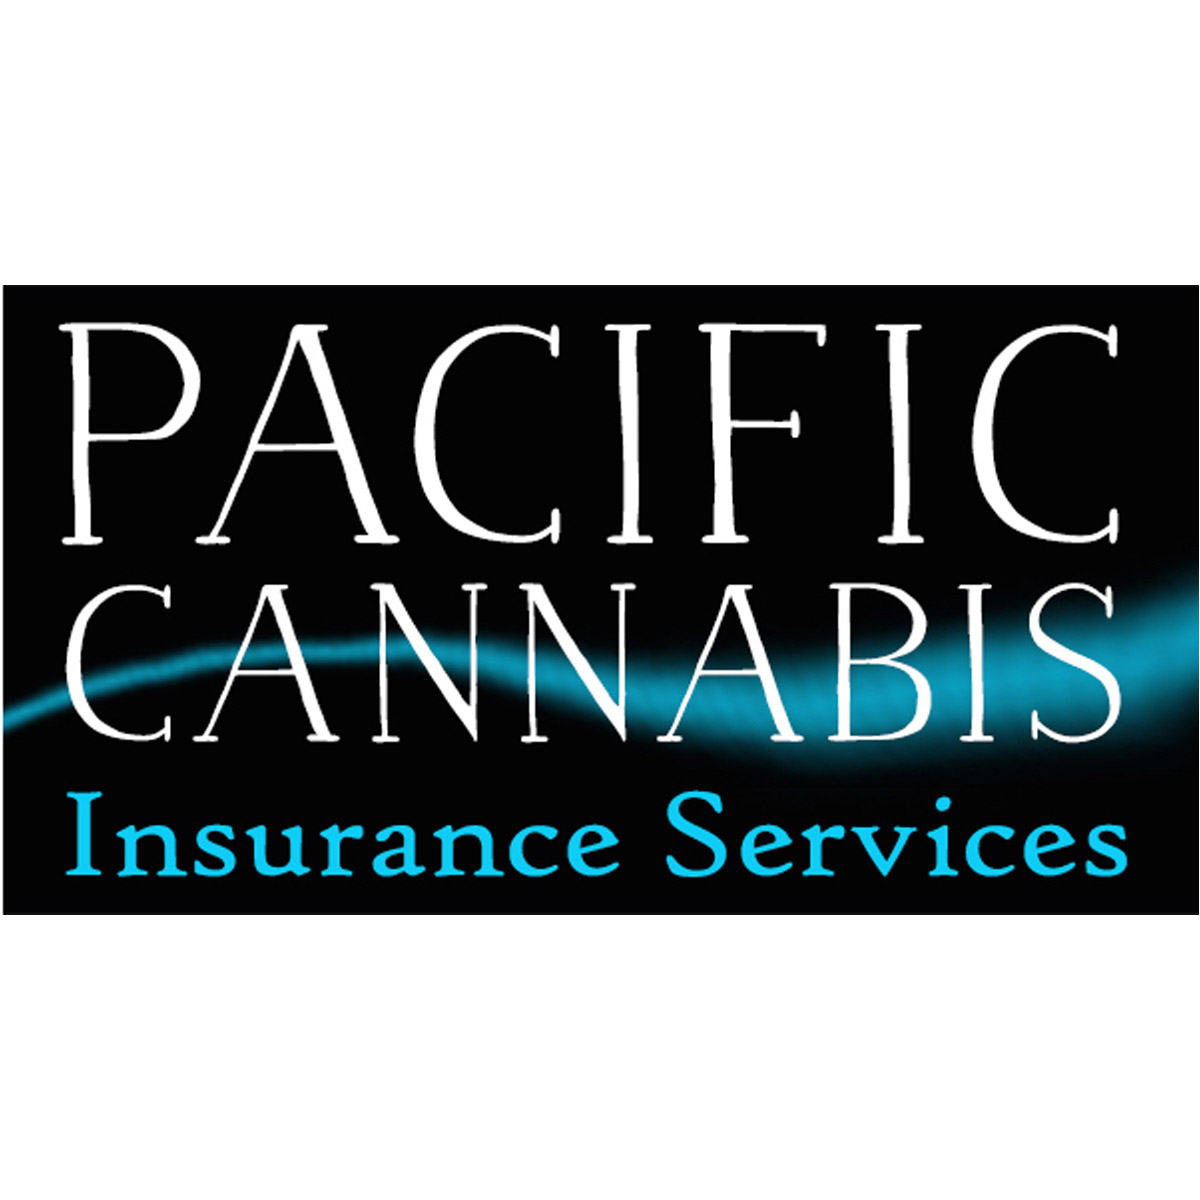 Pacific Cannabis Insurance Services logo